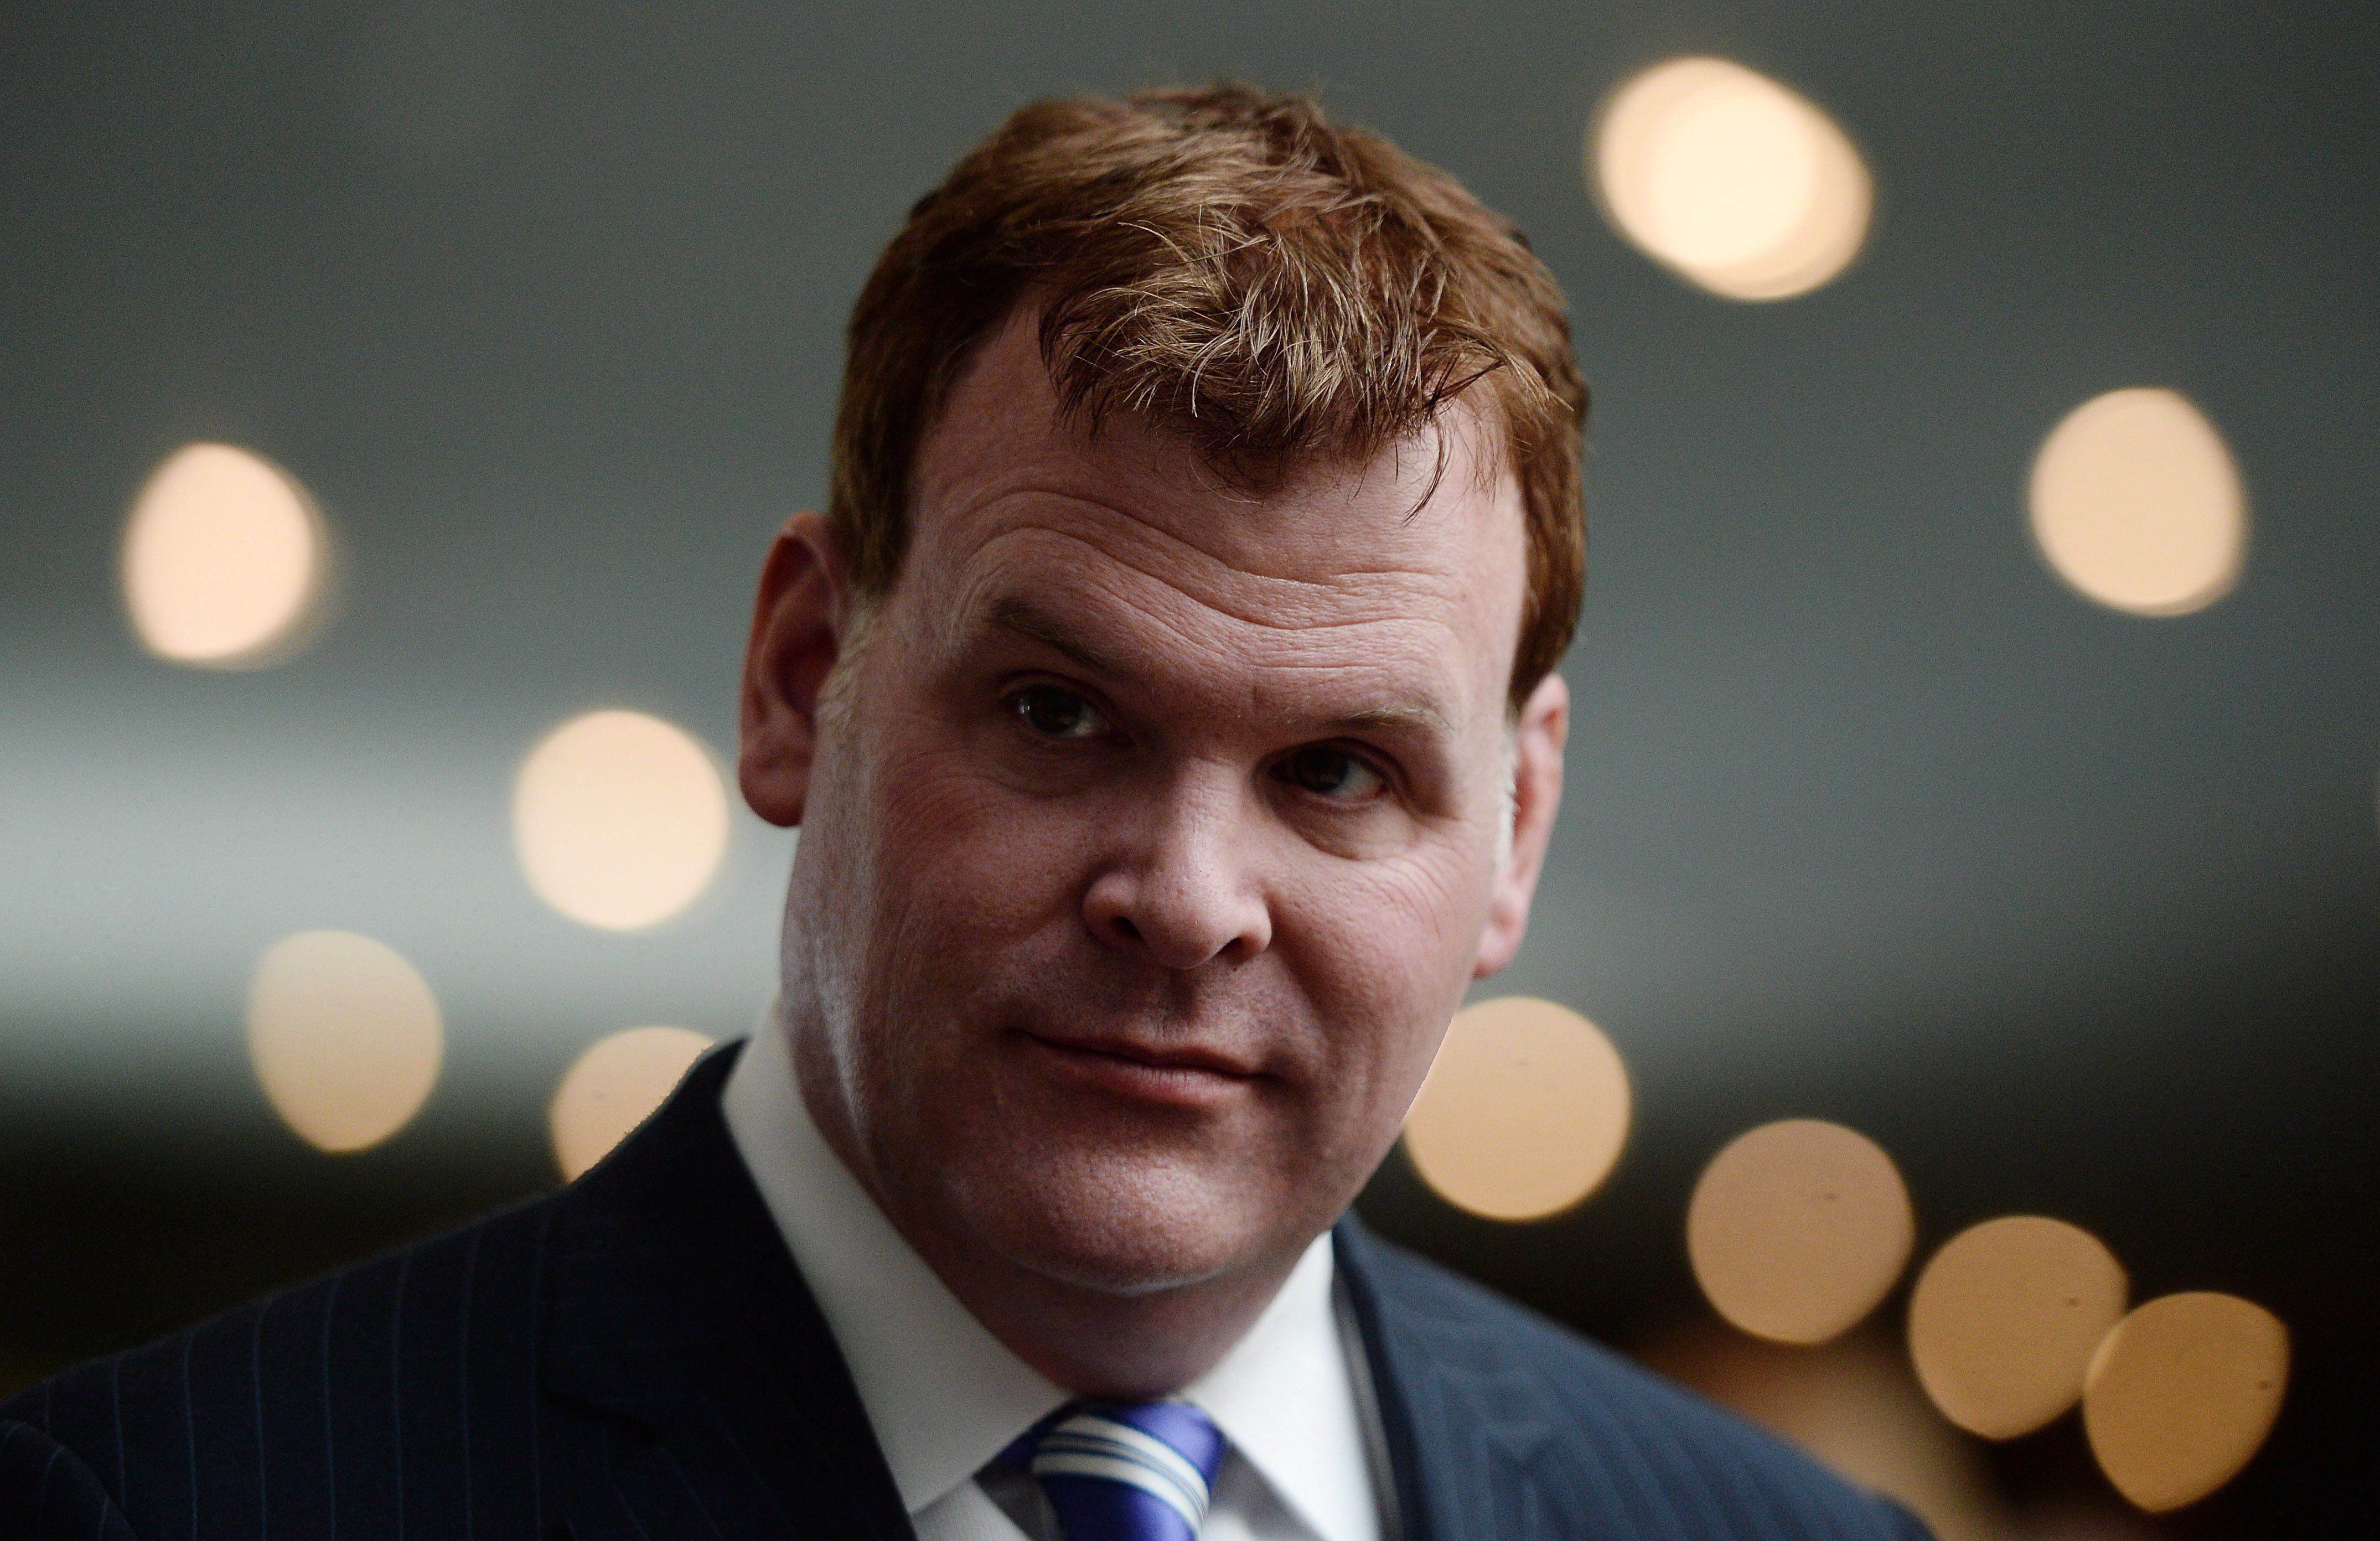 Canada's Minister of Foreign Affairs John Baird in Ottawa in May 2014. (Sean Kilpatrick / The Canadian Press)